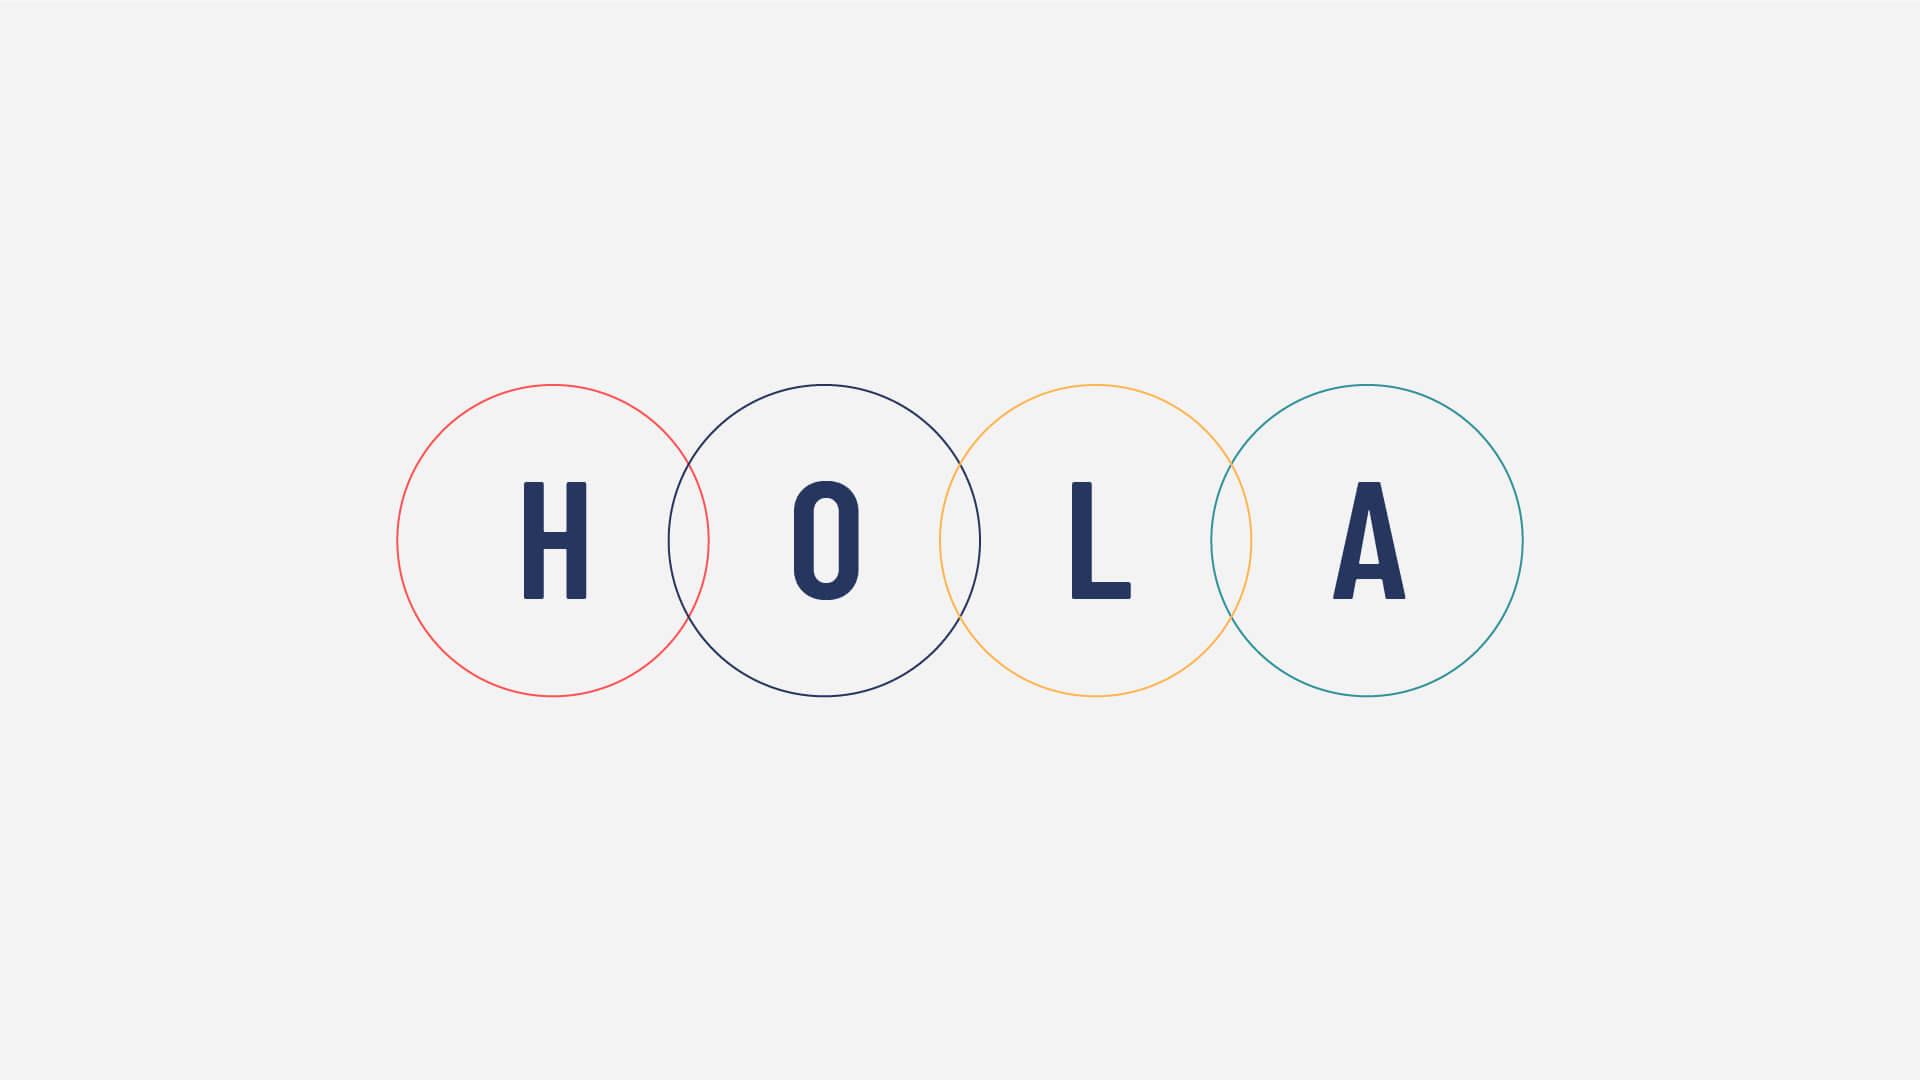 HOLA letters